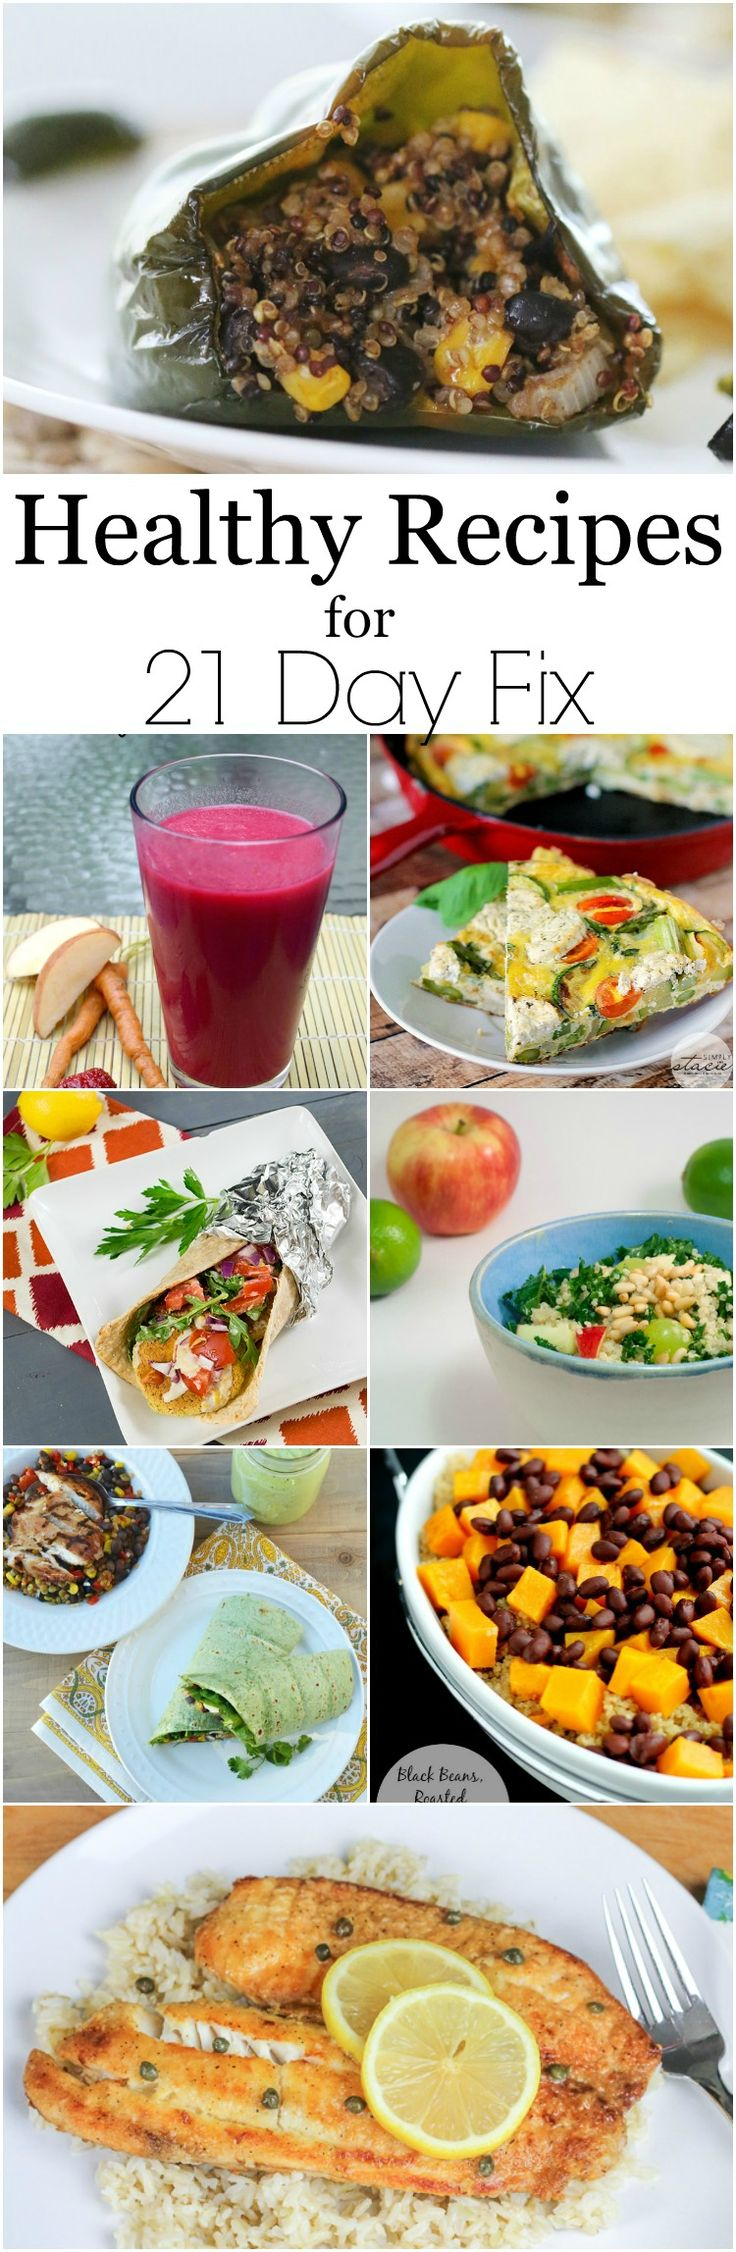 Healthy Recipes for 21 Day Fix for dinner or lunch that will keep you on track for your healthy lifestyle.[ SoberAssistance.com ]